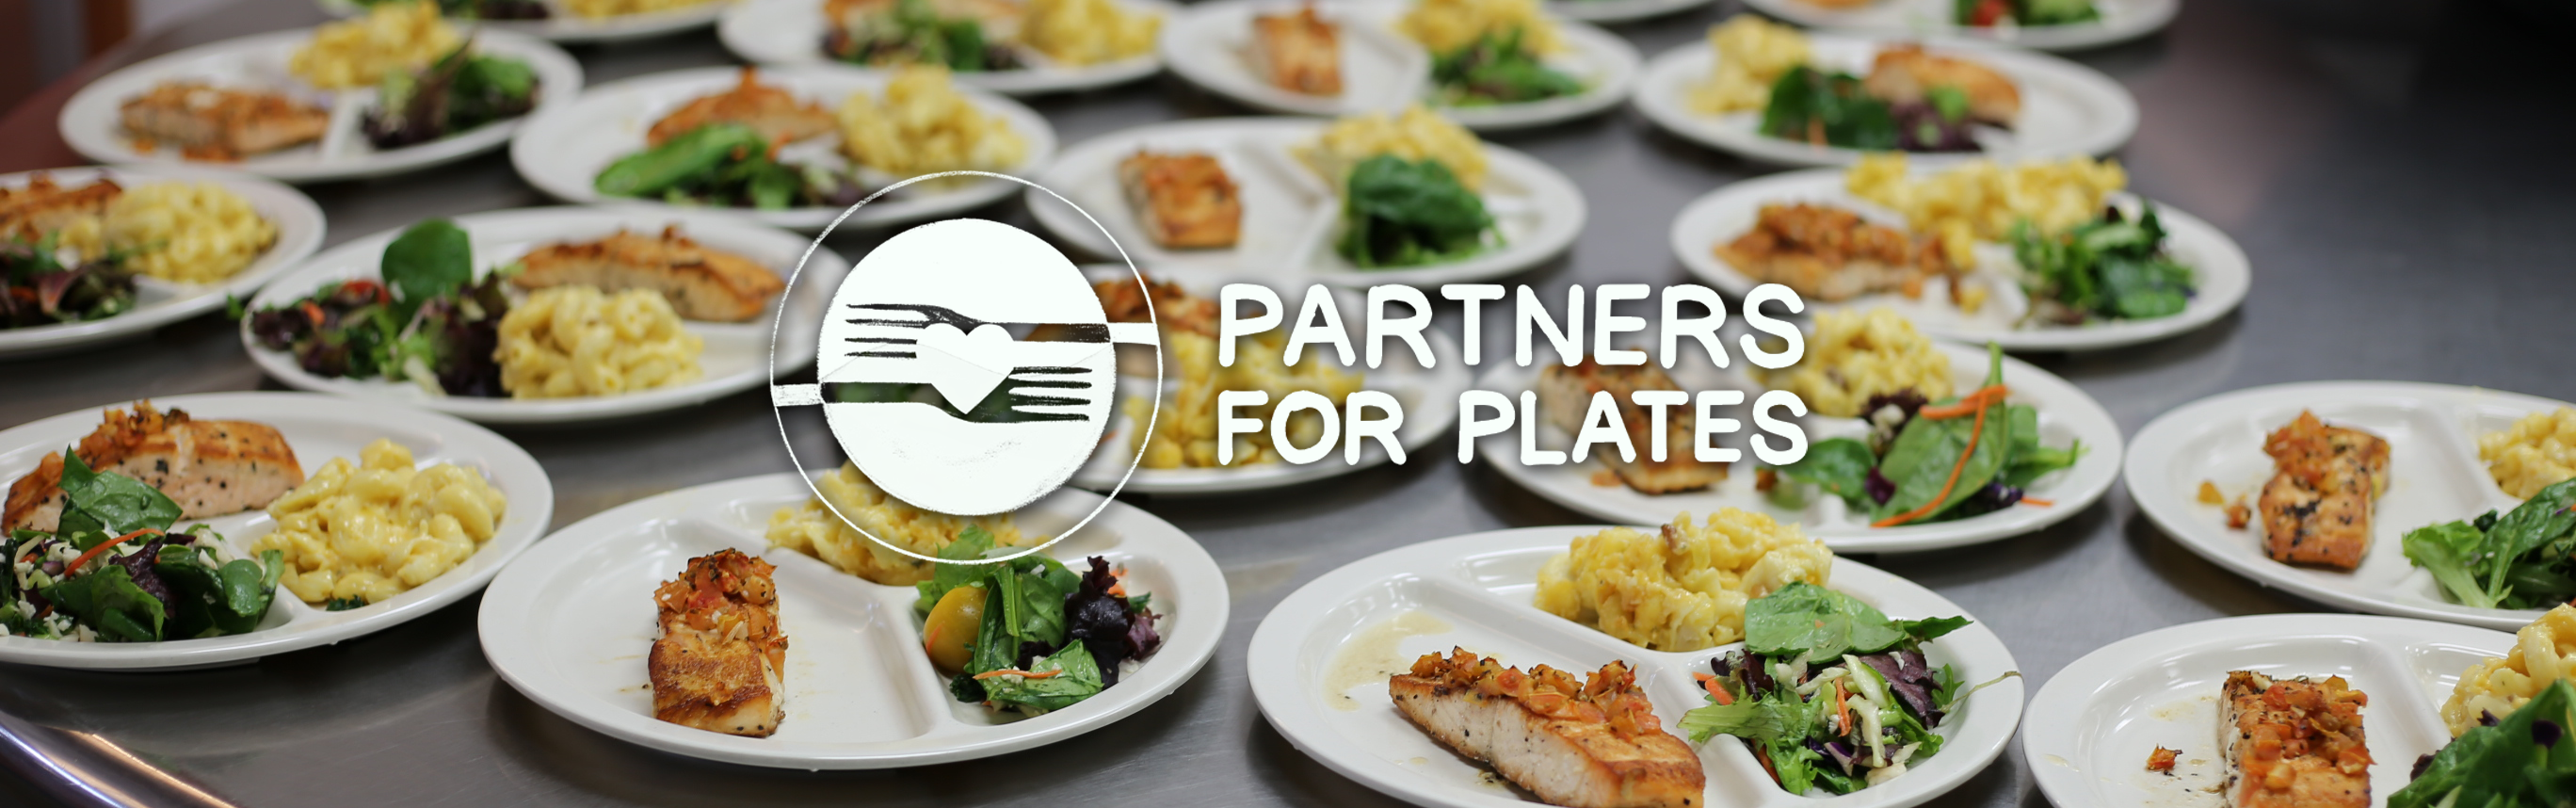 Partners for Plates Photo Header